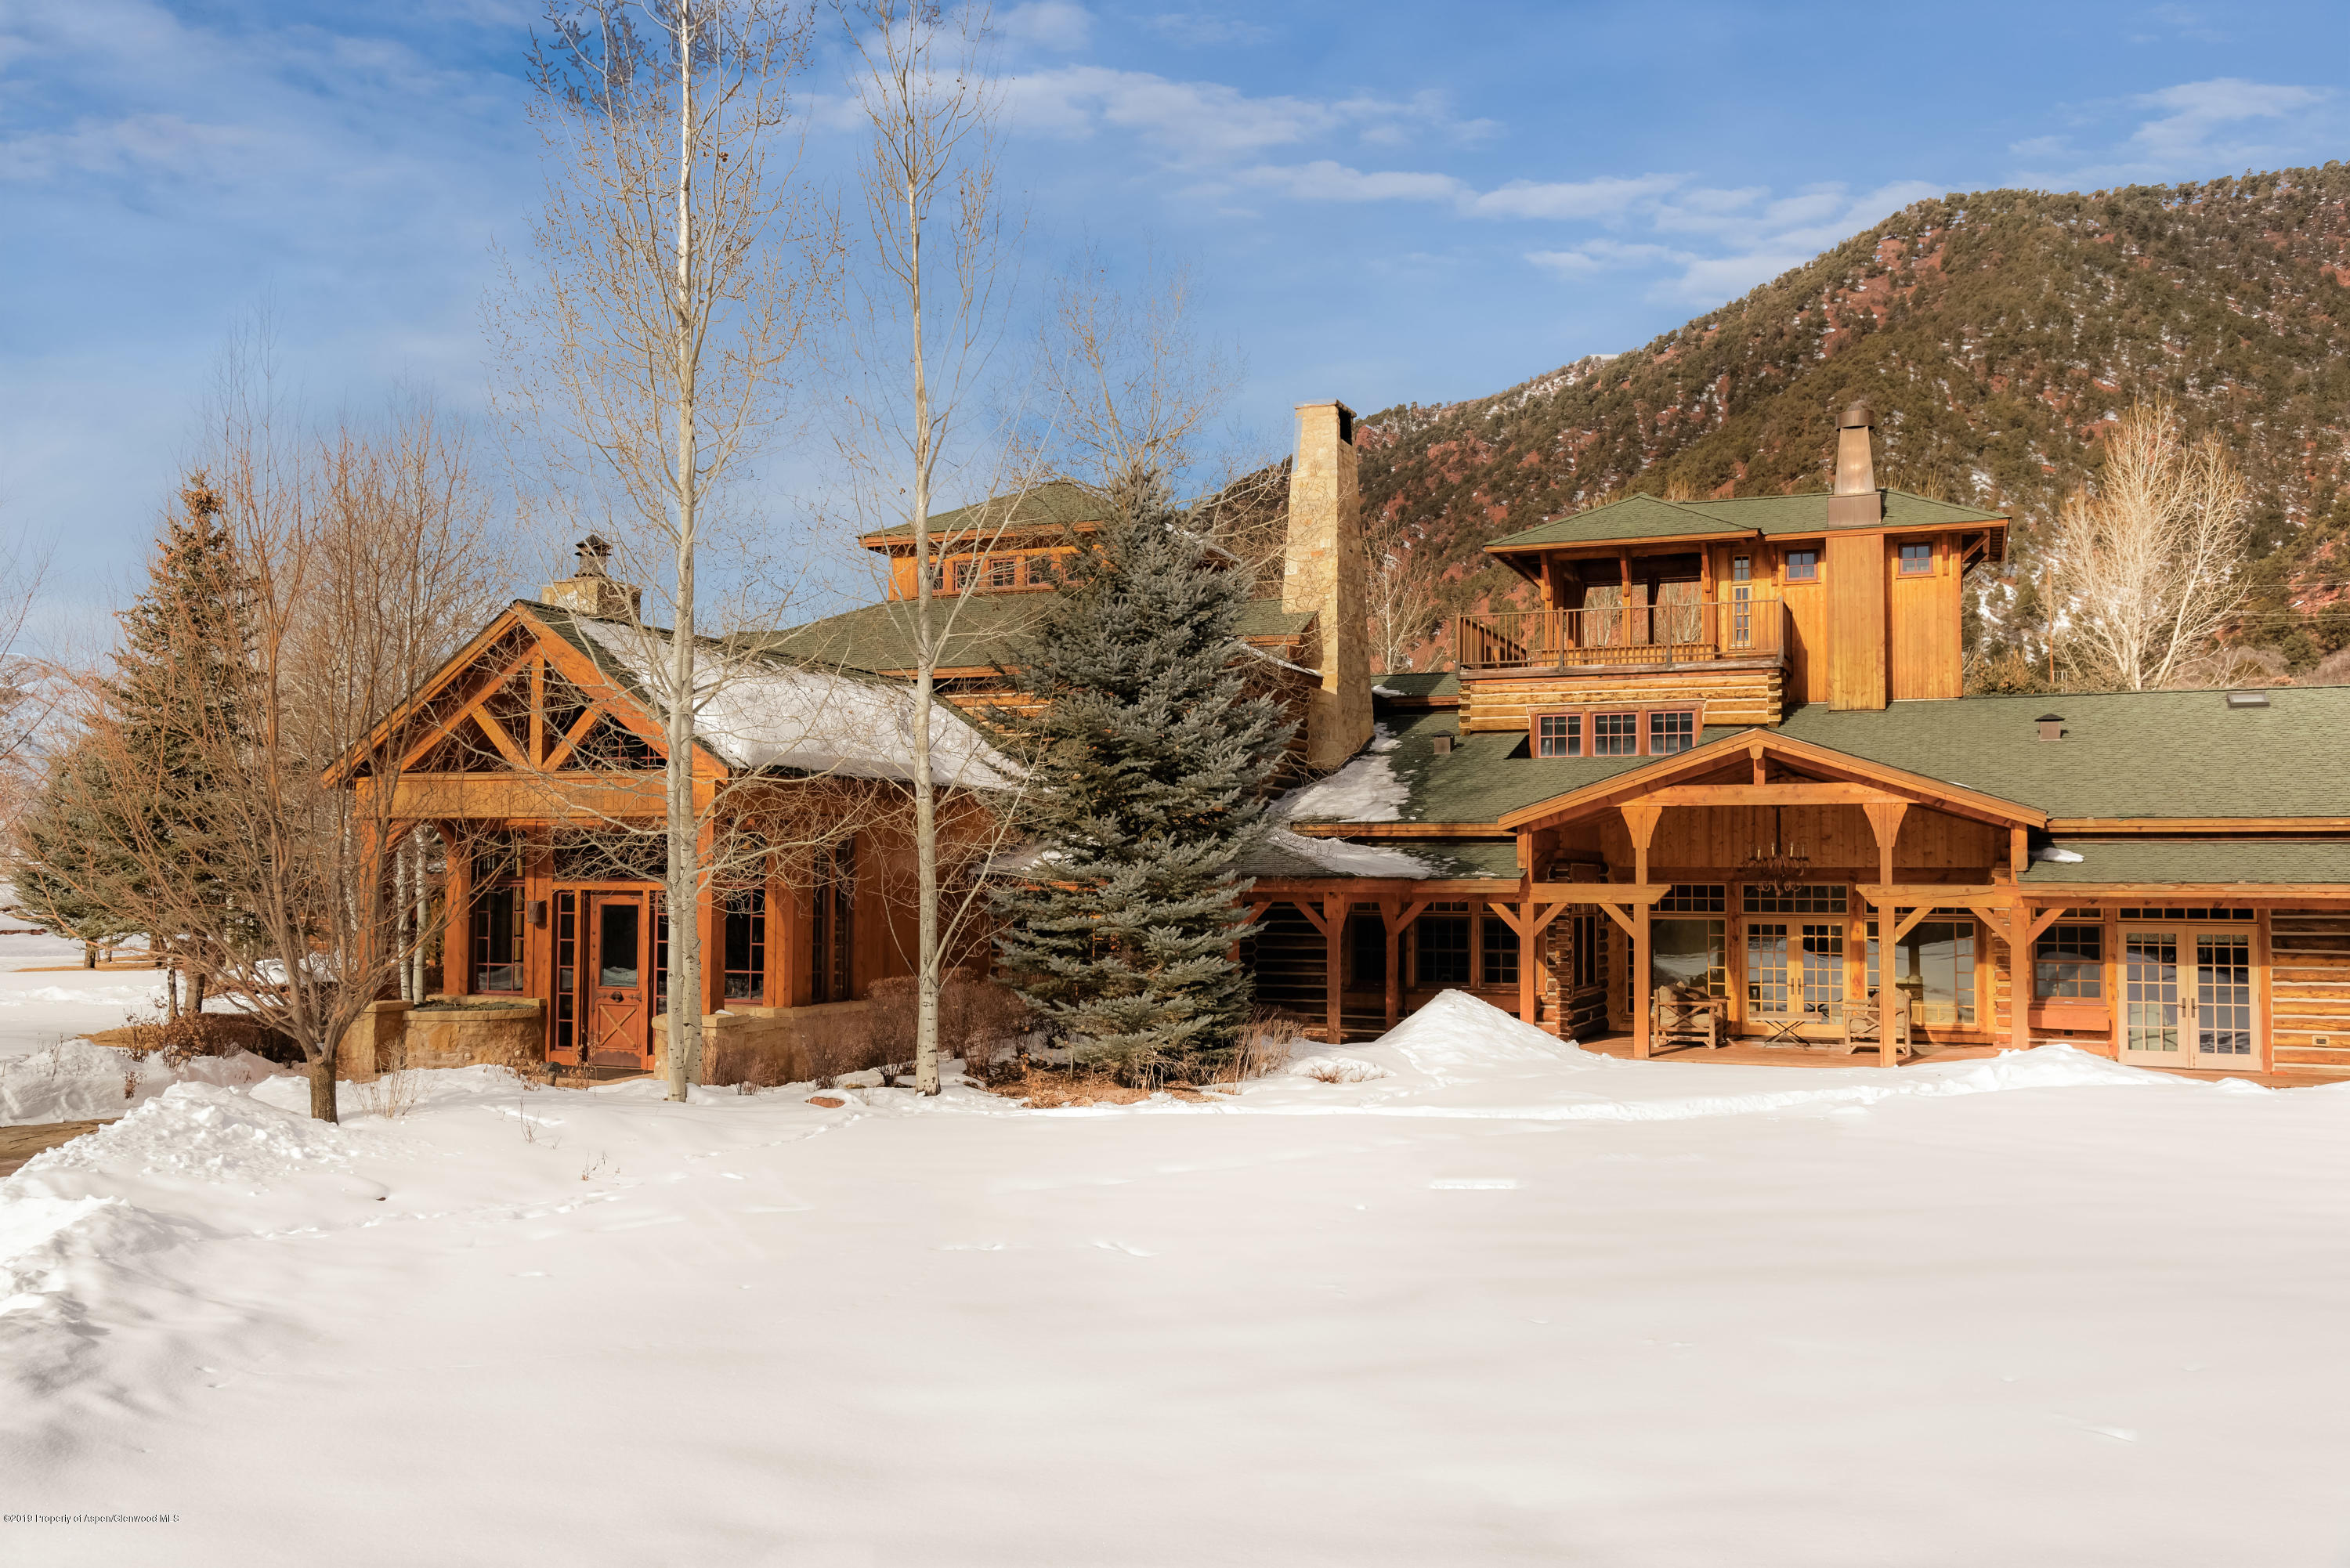 MLS# 135595 - 3 - 50 E River Ranch Road, Snowmass, CO 81654